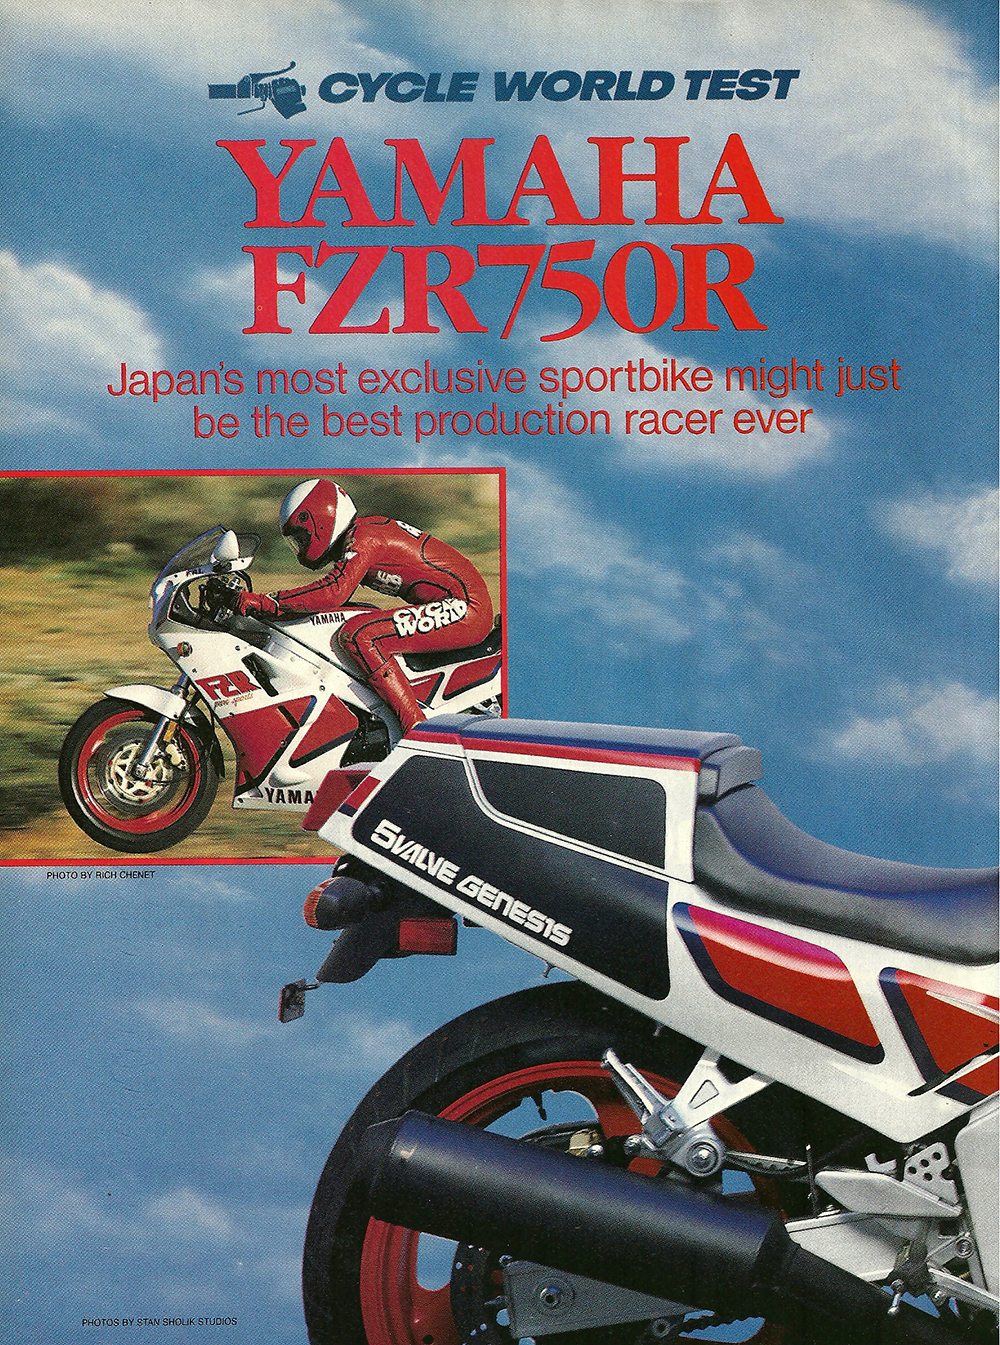 1987 Yamaha FZR750R road test 01.jpg